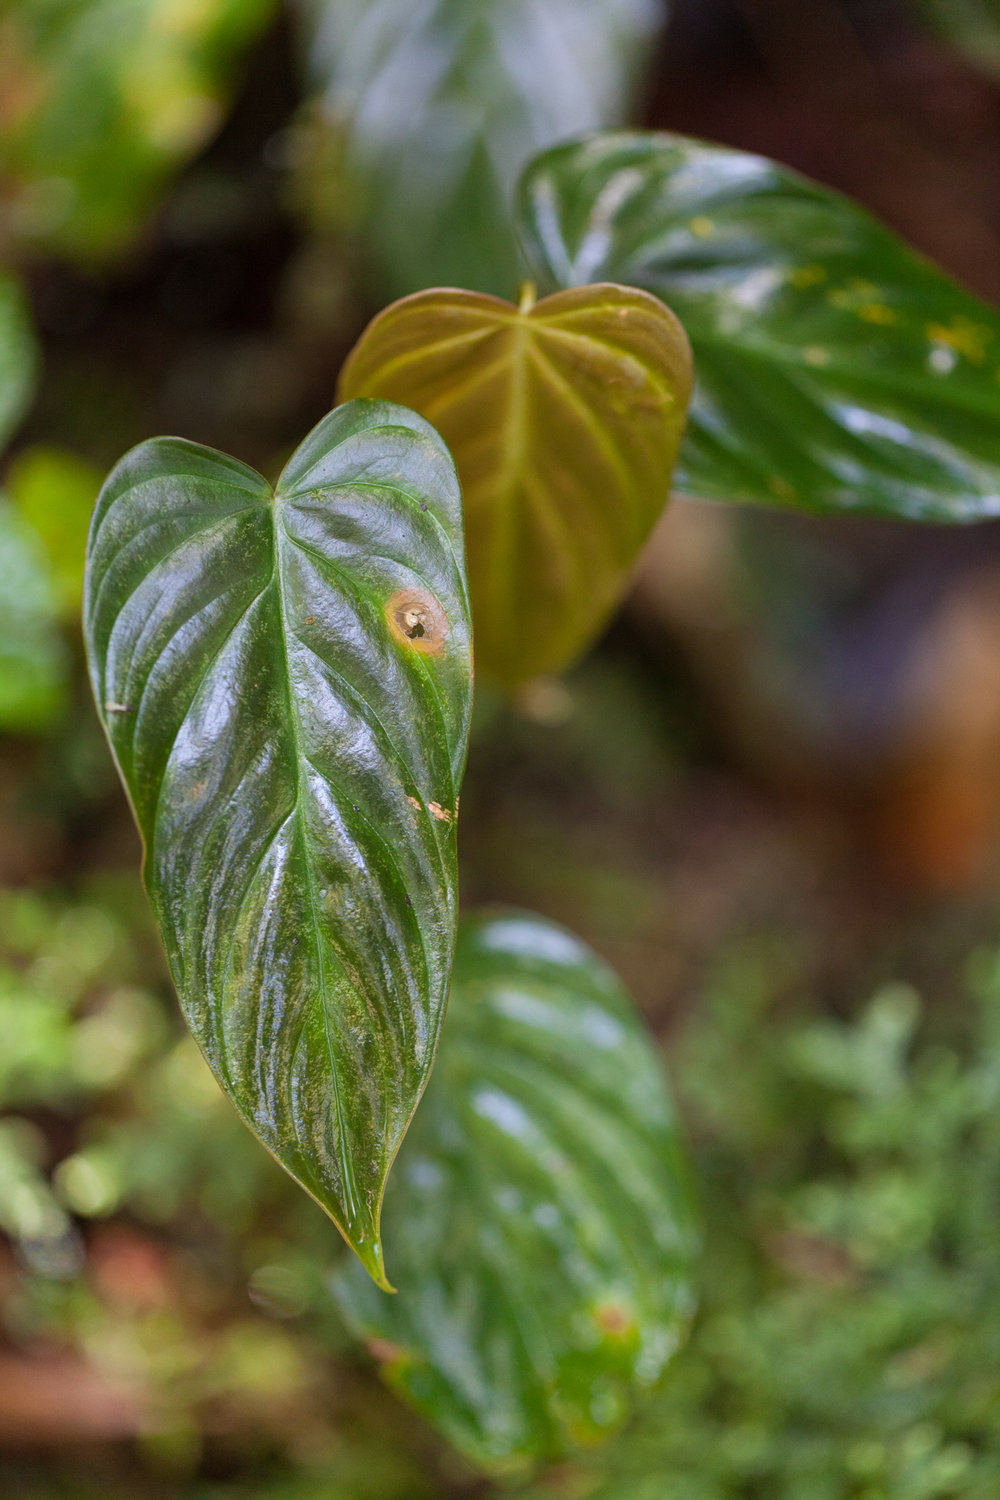 Some  Philodendrons  still wet from the early morning dampness. Tapanti National Park, Costa Rica.